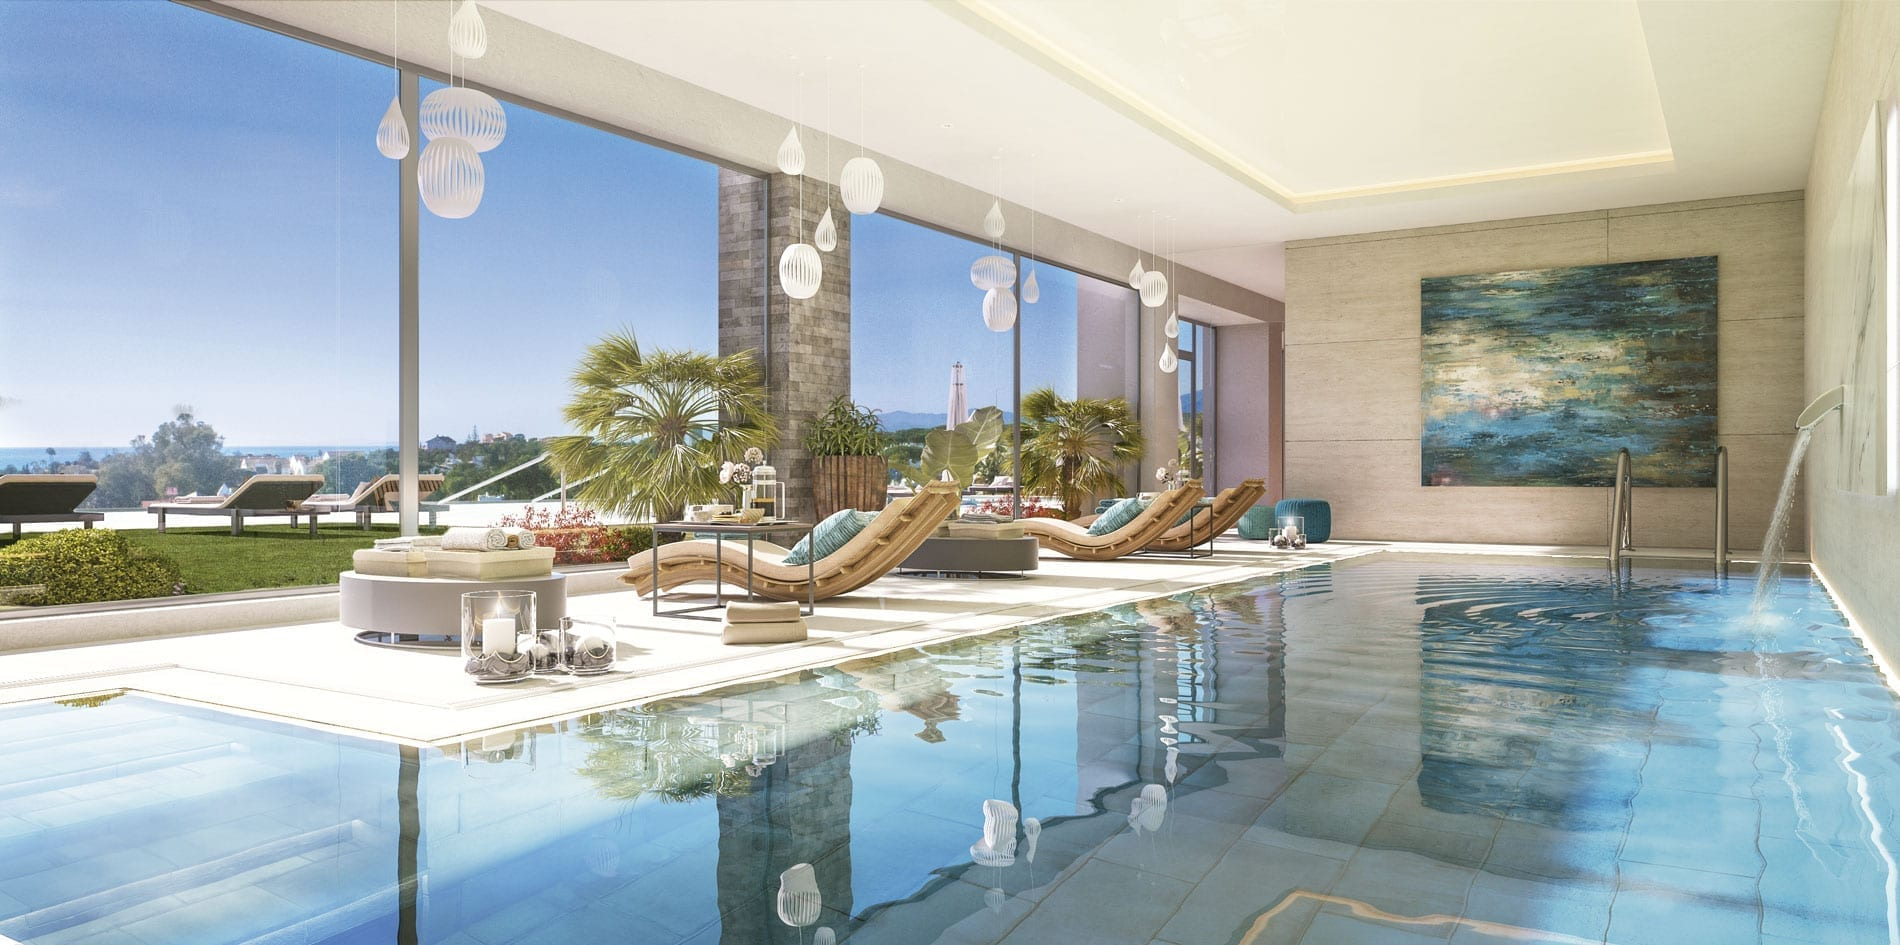 Communal landscaped gardens and an open-air pool where you can enjoy the peace and quiet of the area, plus a fitness room and an indoor pool for complete care of mind and body